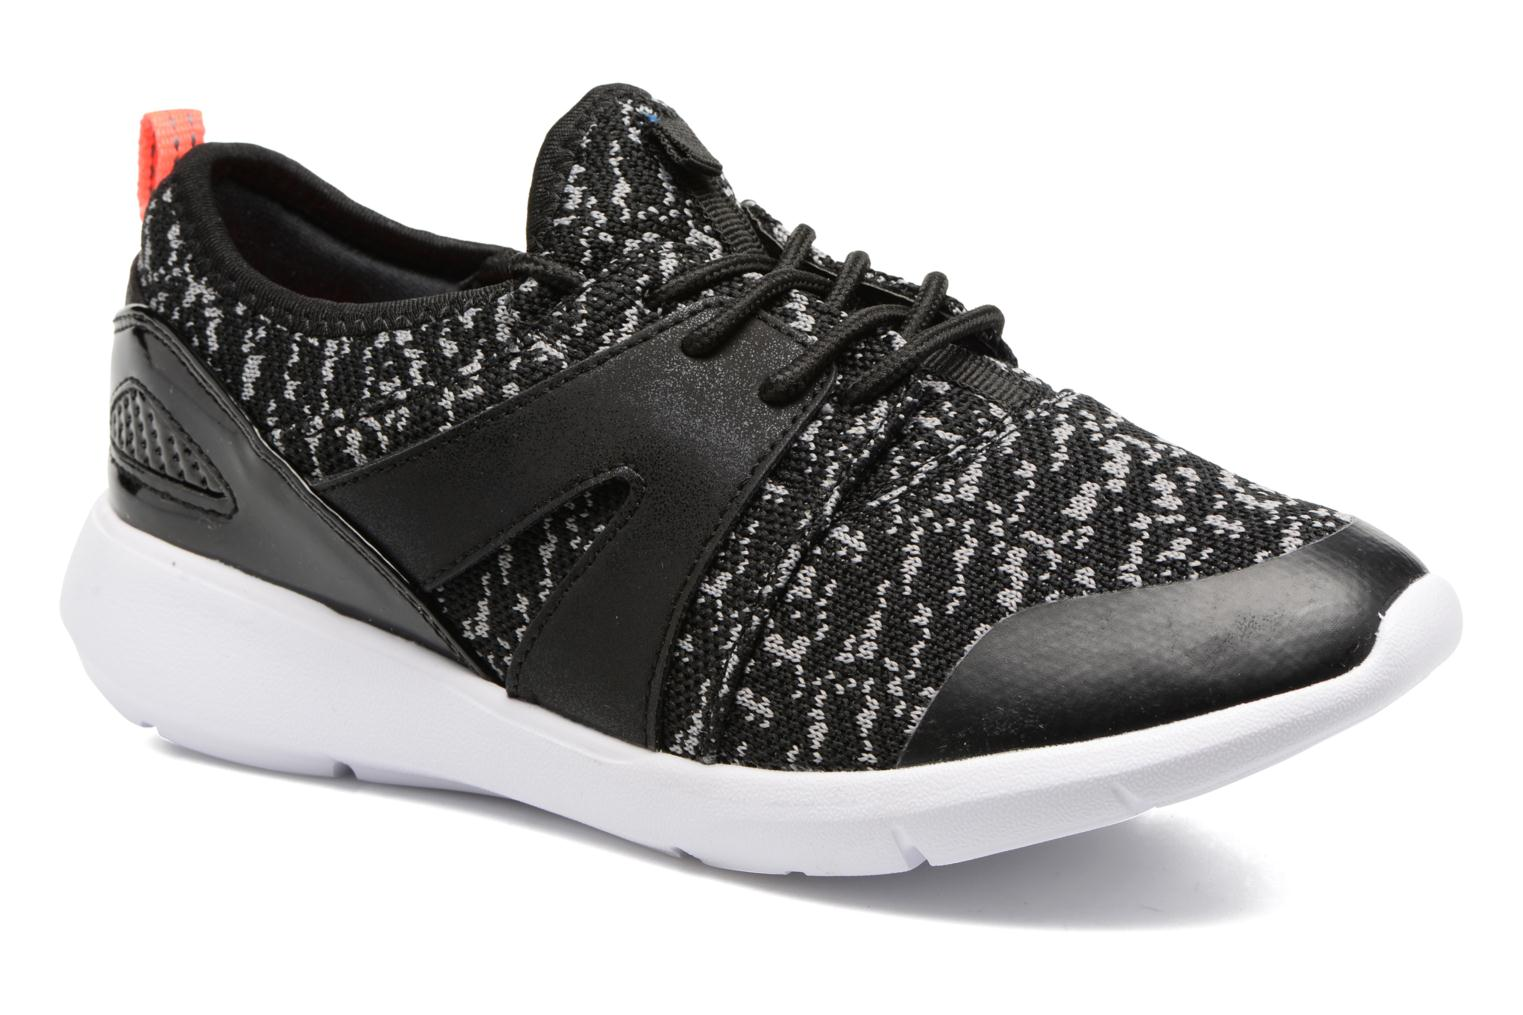 Marques Chaussure femme ONLY femme Sumba mix sneaker Black/grey